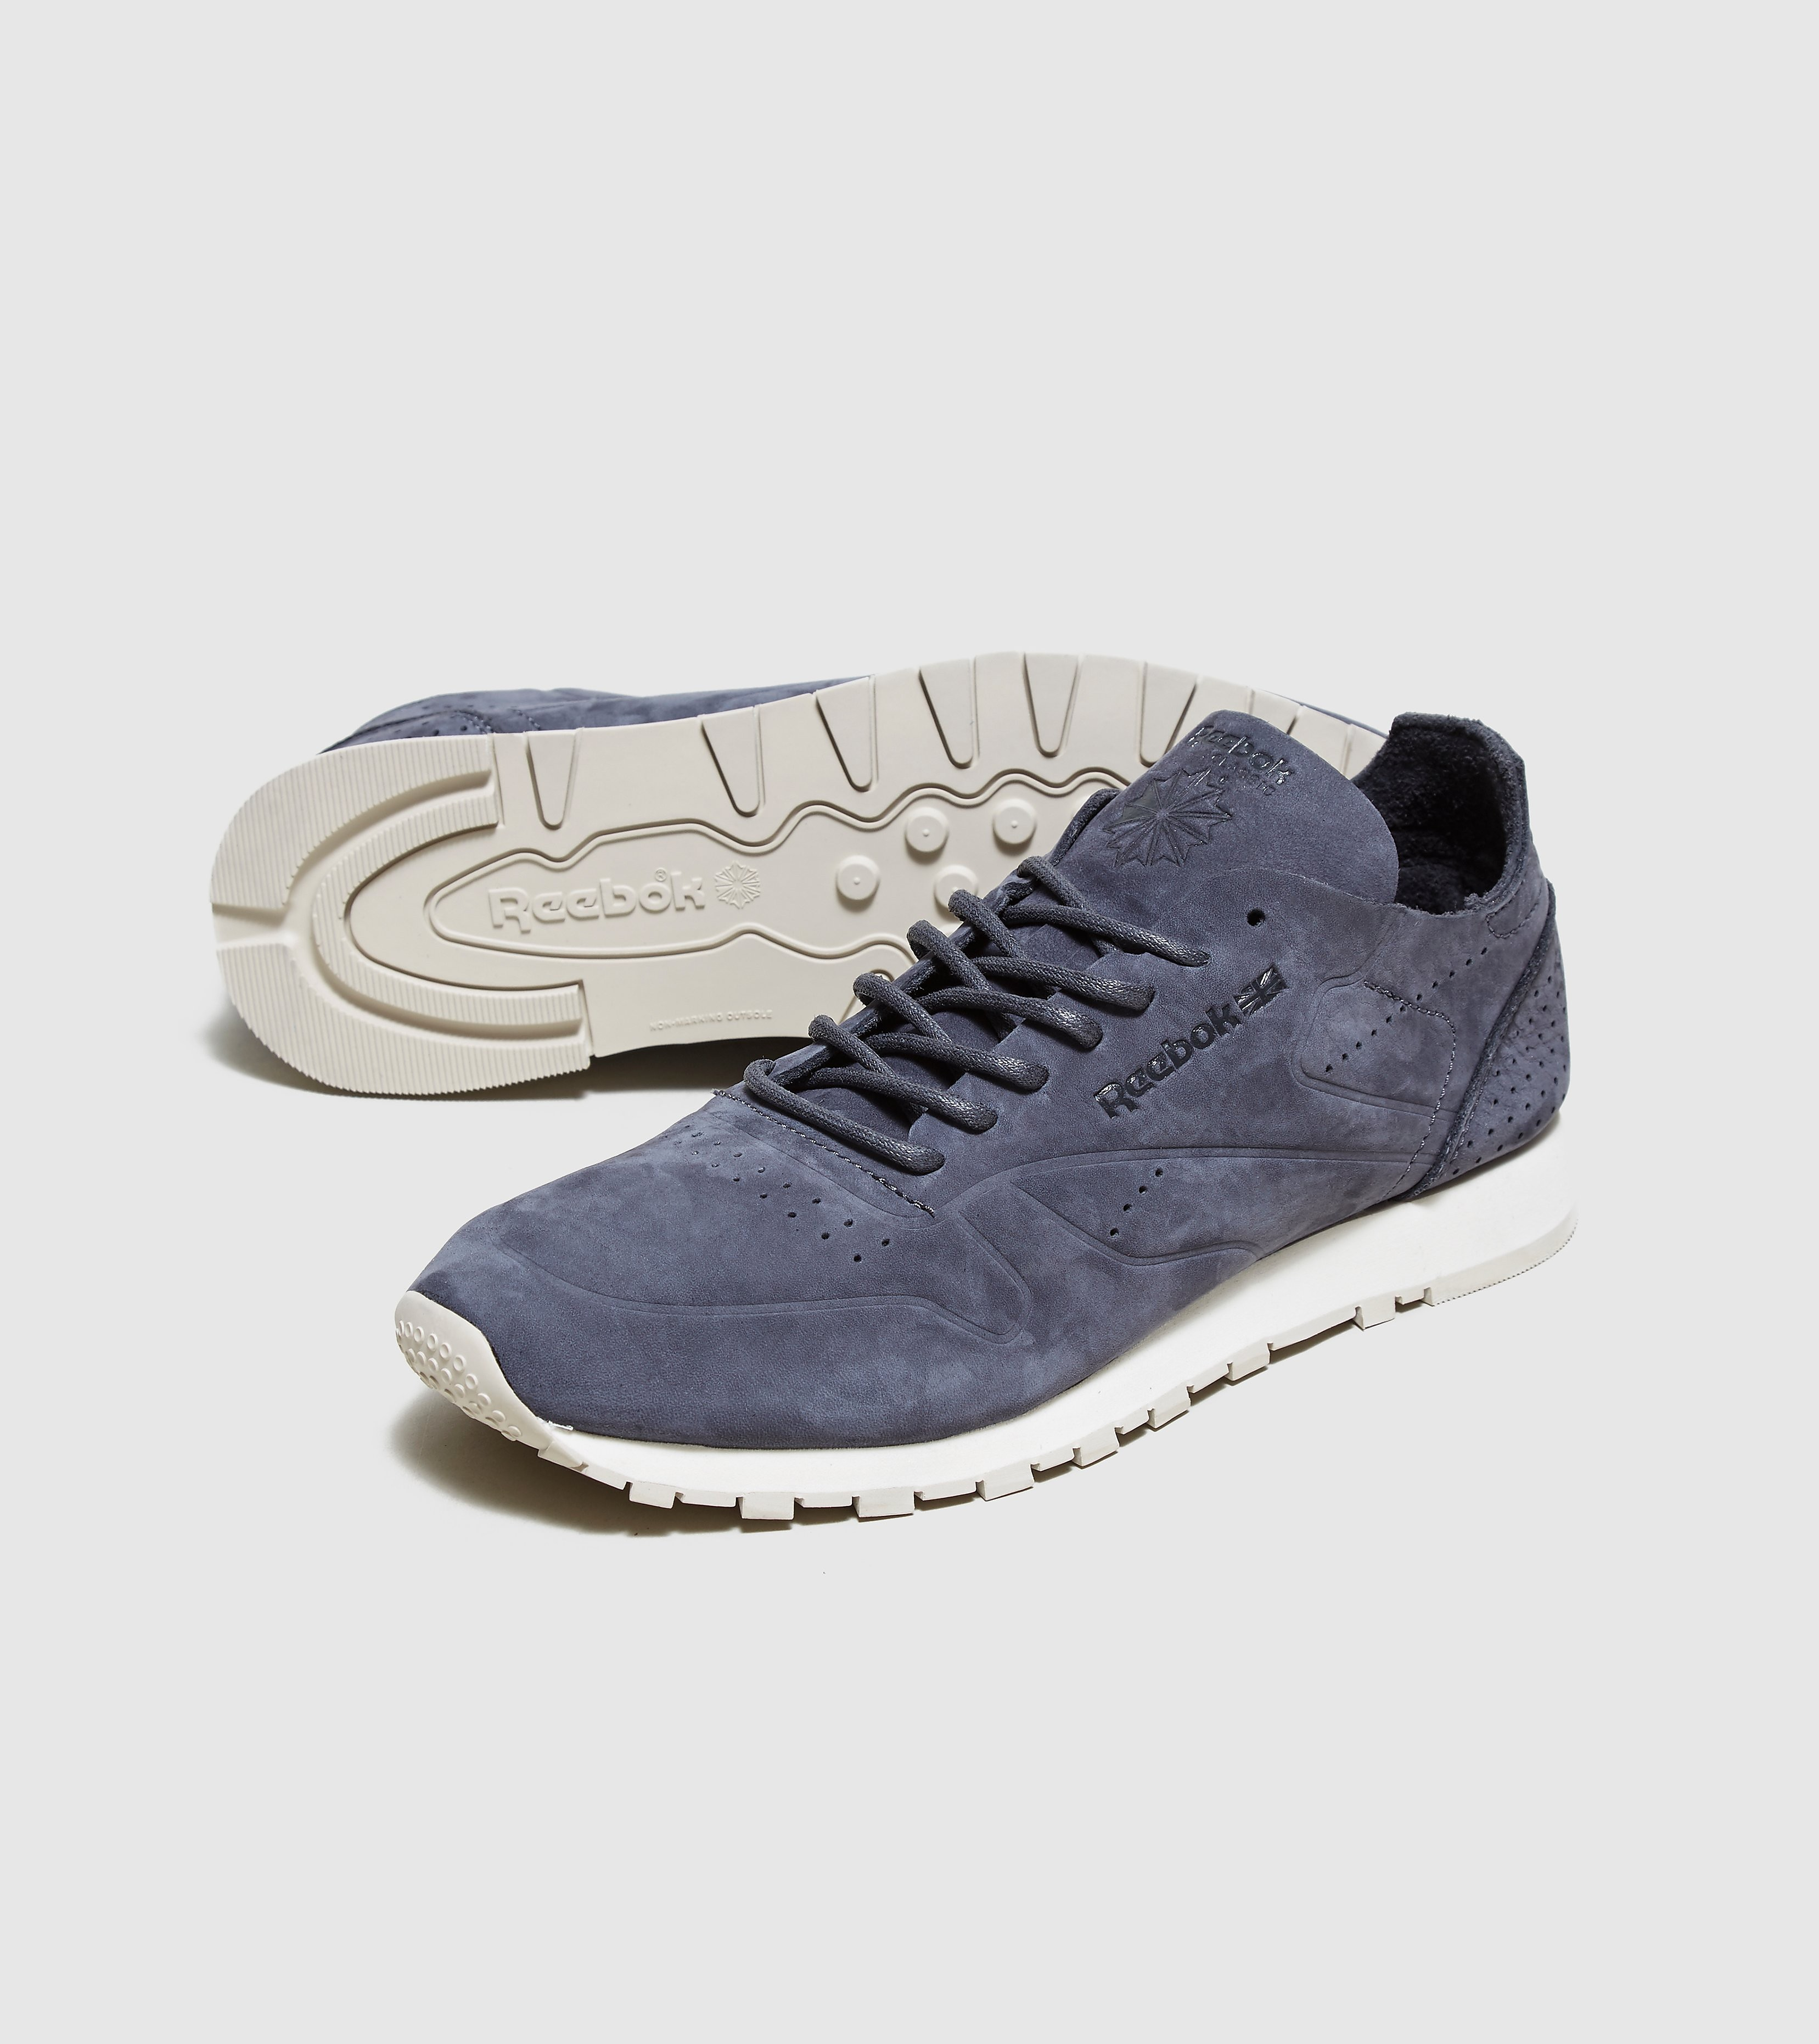 Reebok Classic Leather Deconstructed - size? Exclusive